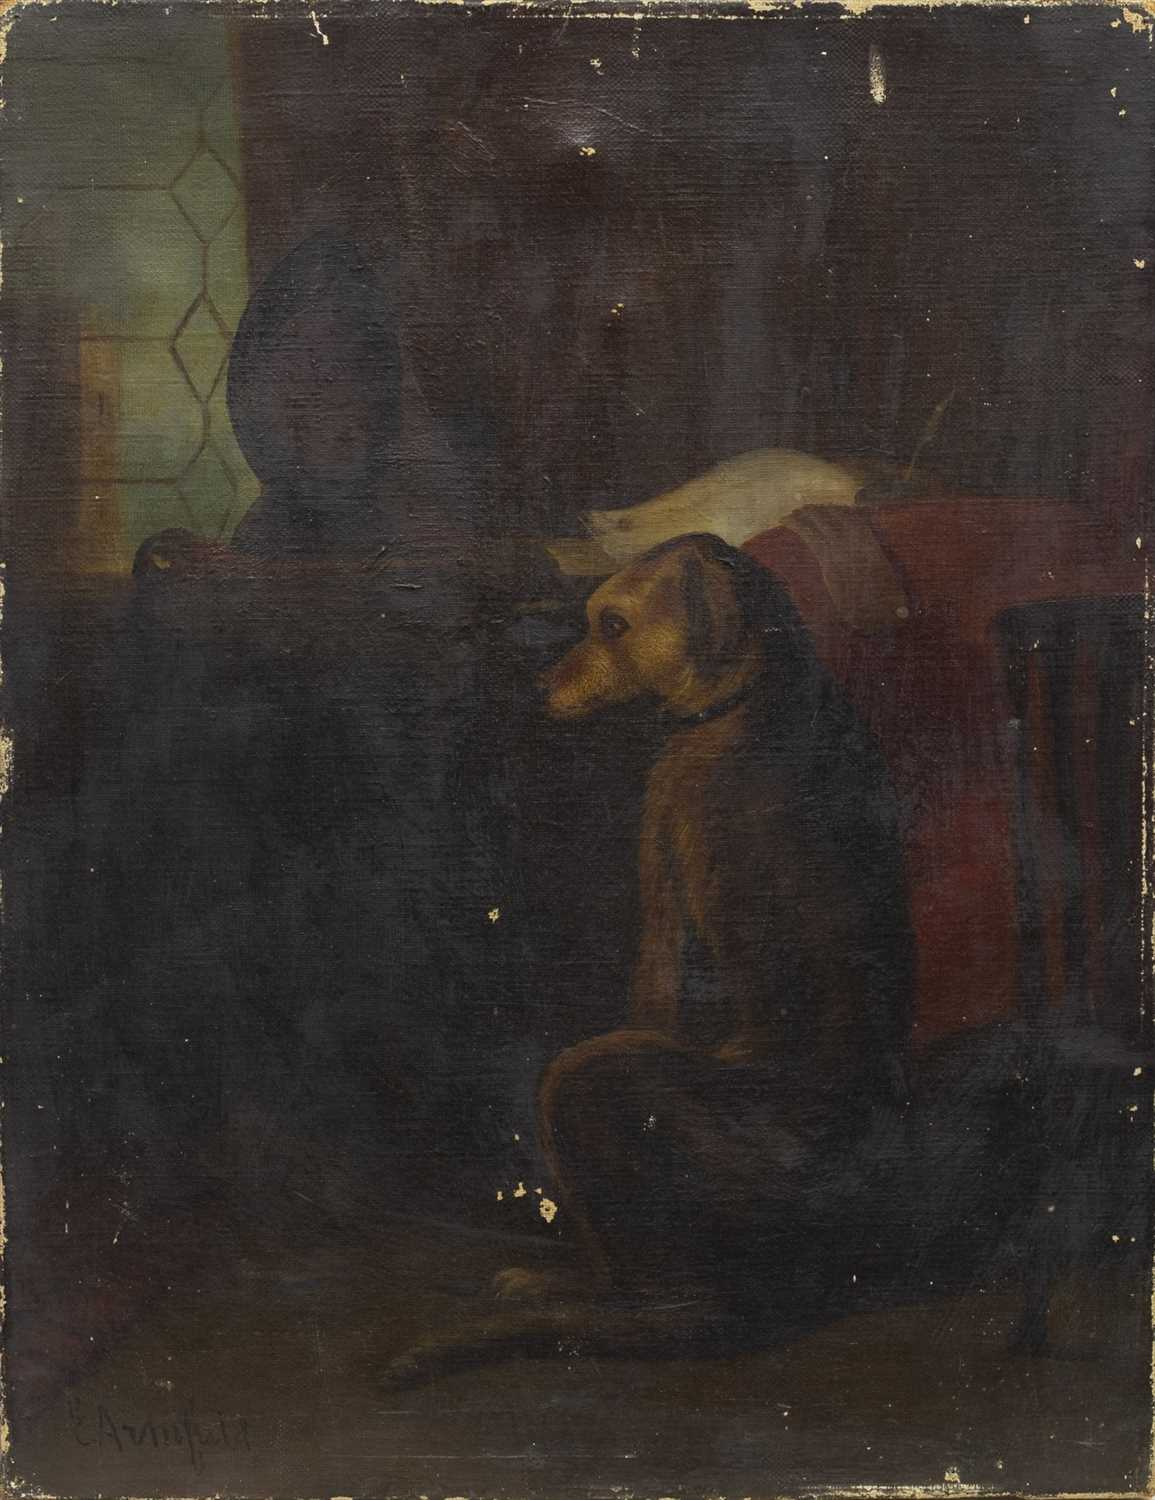 Lot 406-DOG IN INTERIOR, AN OIL BY EDWARD ARMFIELD